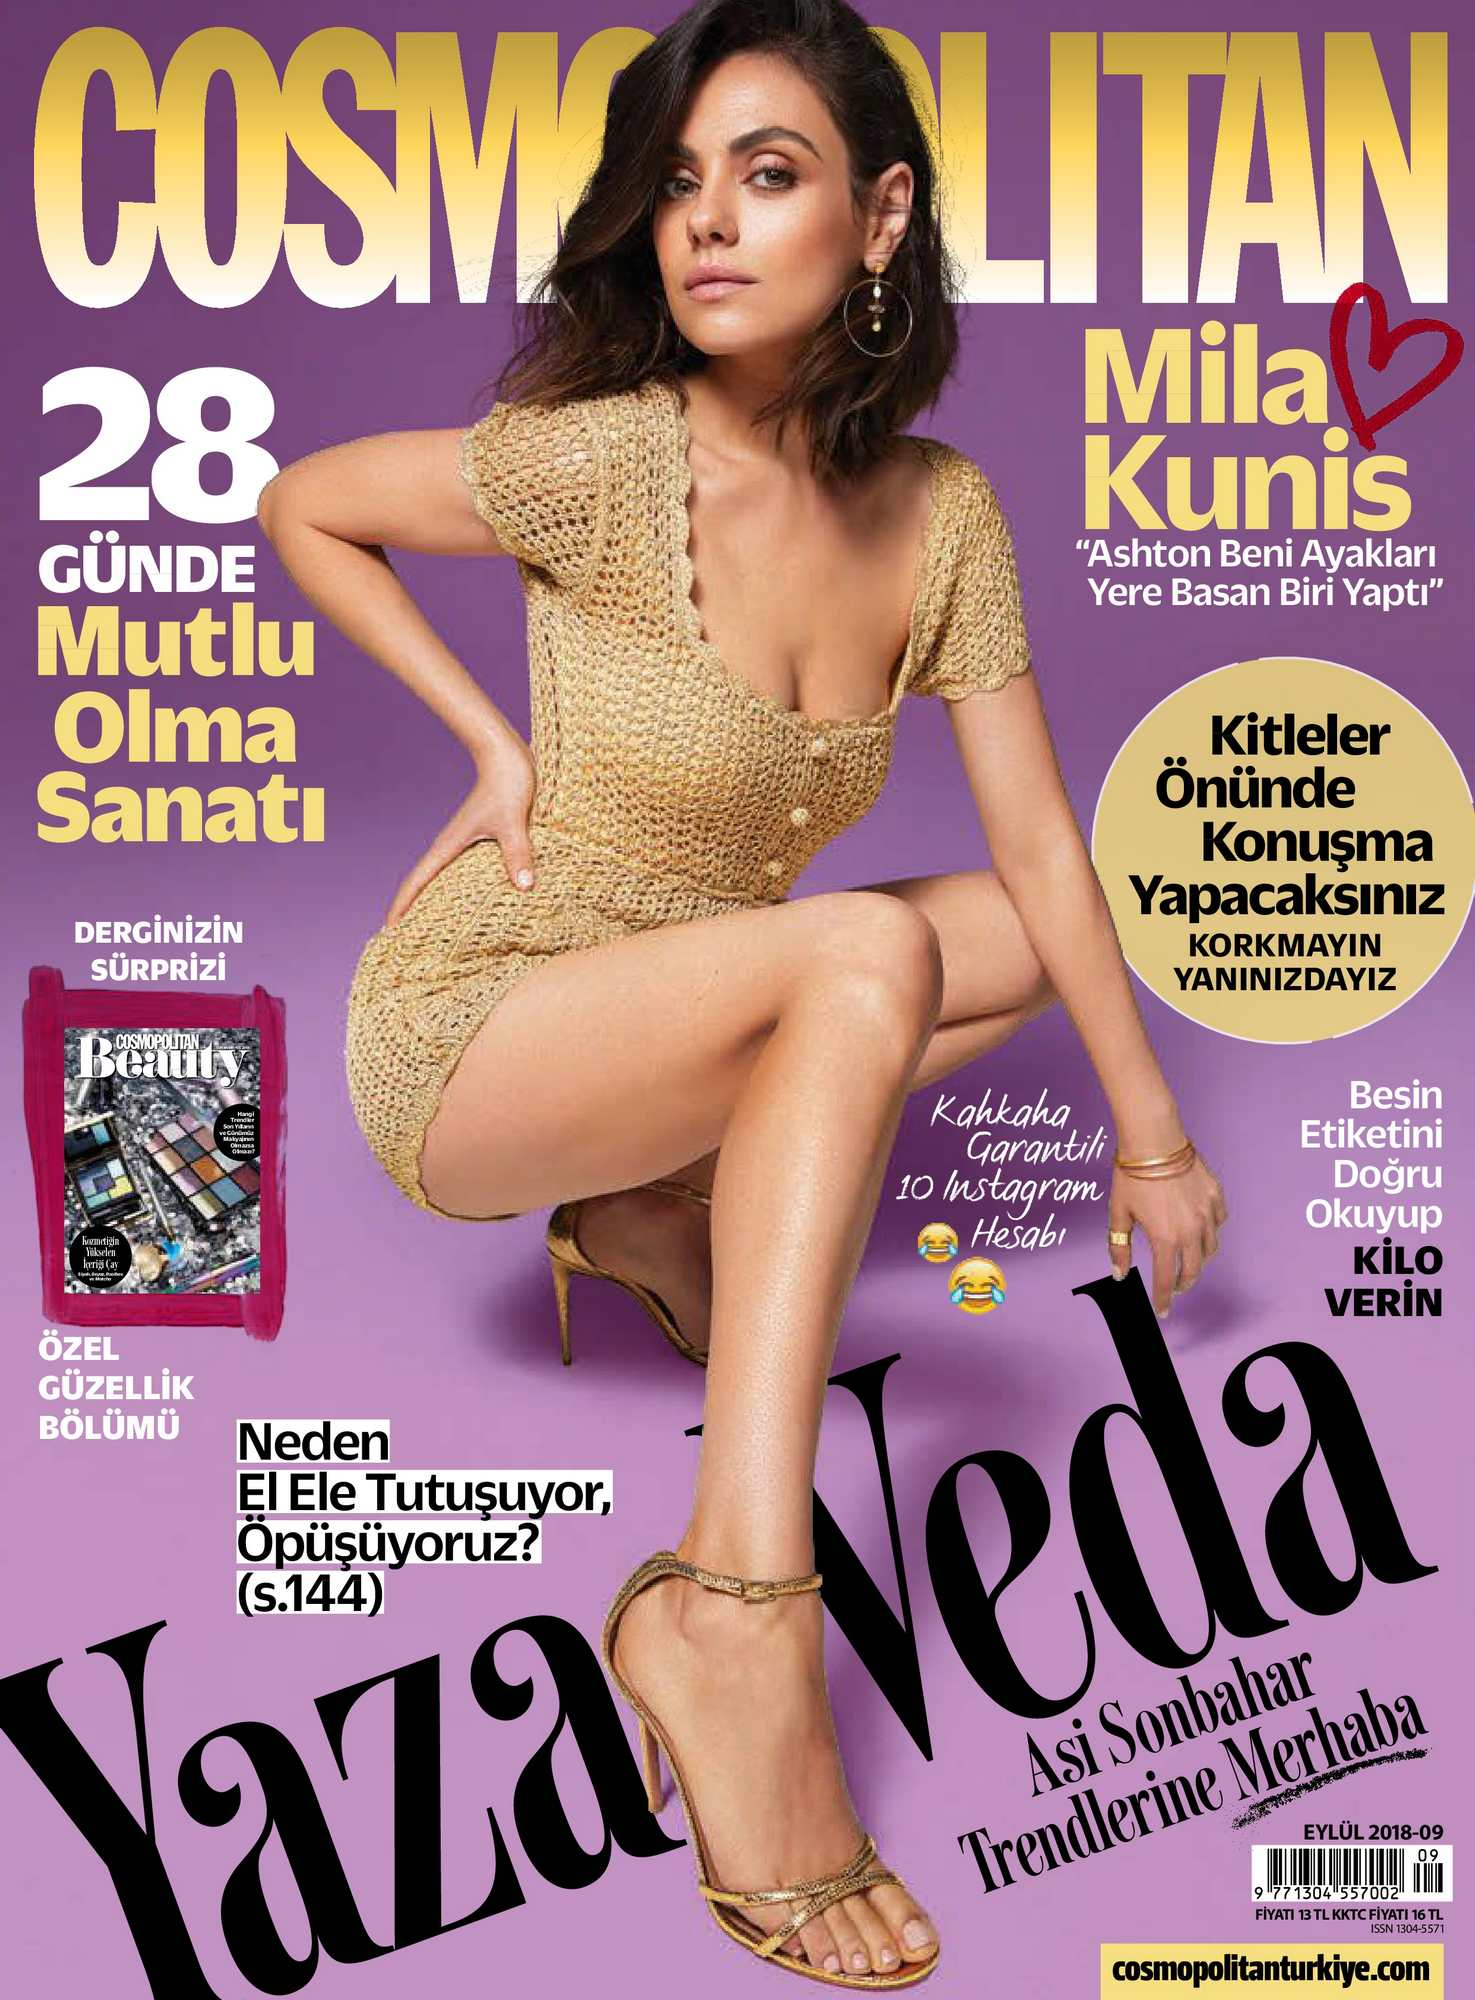 Mila-Kunis-Cosmopolitan-Turkey-September-2018de306c965321624.jpg